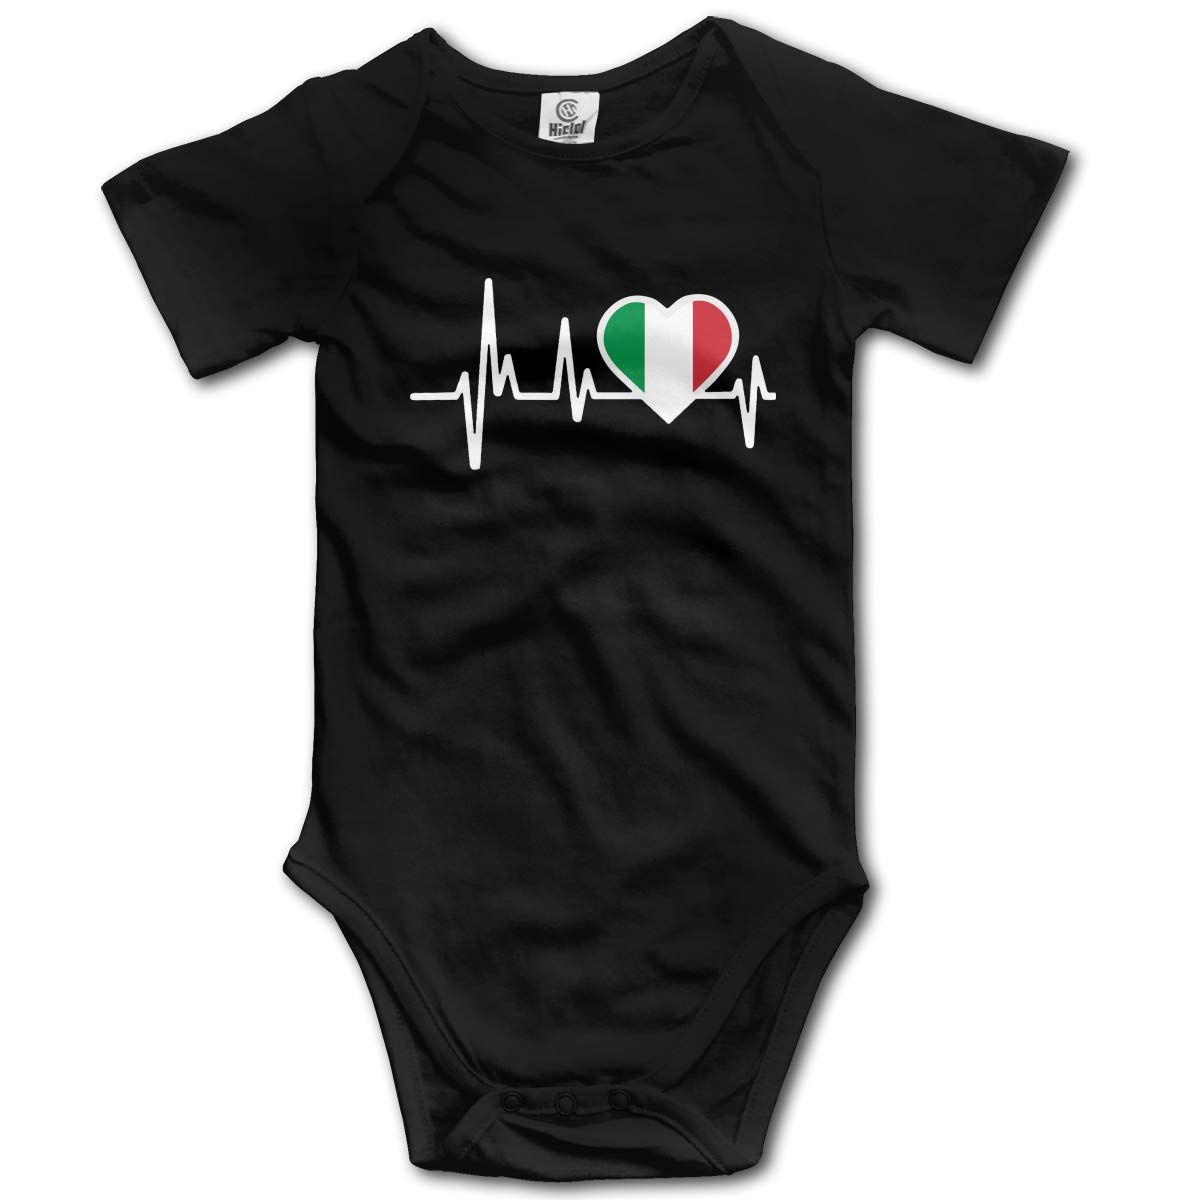 Baby Boys Italy Heartbeat Flag Short Sleeve Climbing Clothes Pajamas Sleepwear Suit 6-24 Months